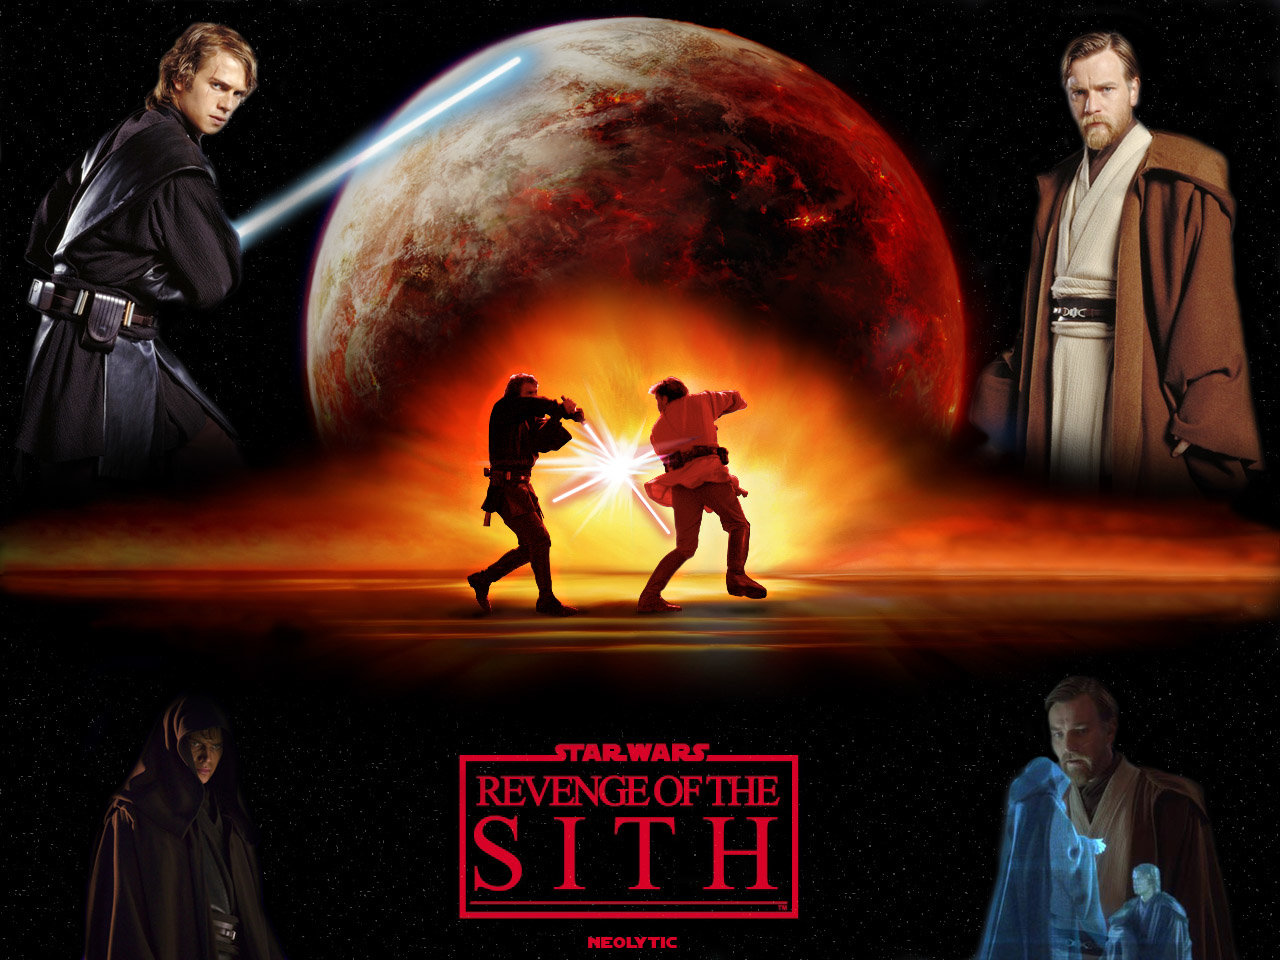 Awesome Star Wars Episode 3 Iii Revenge Of The Sith Free Background Id 109923 For